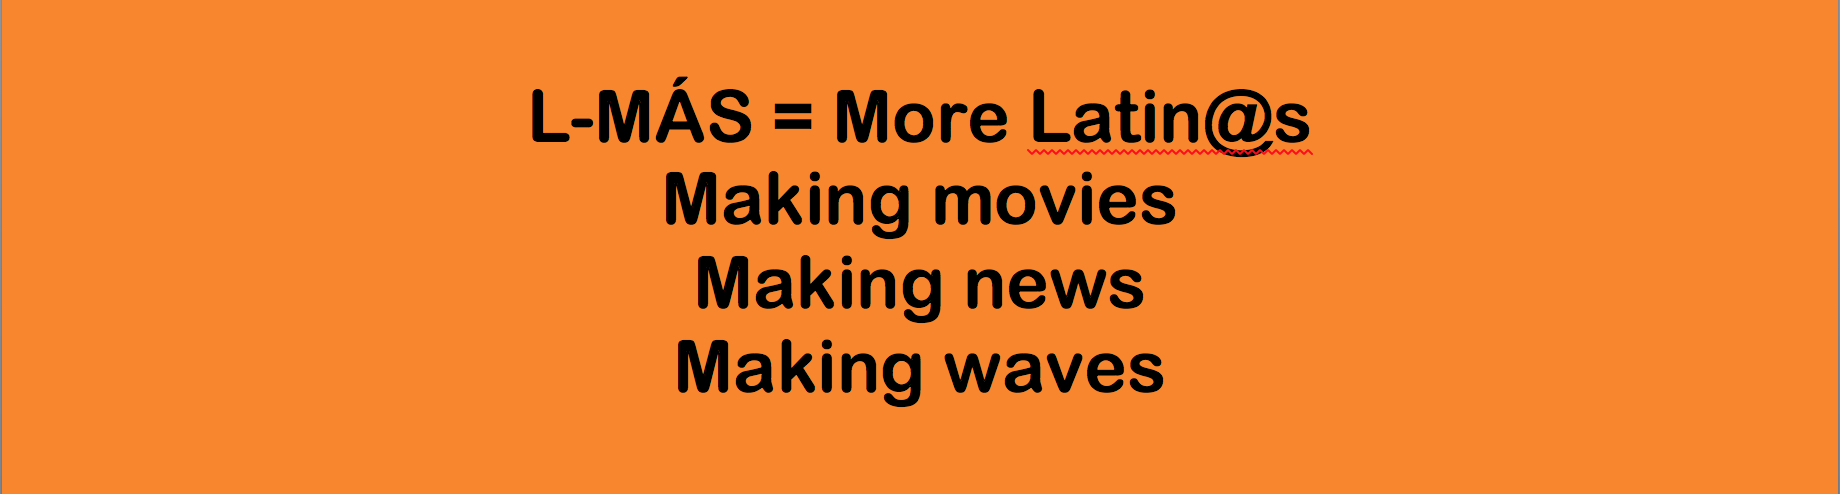 Latino Media Arts and Studies mission logo